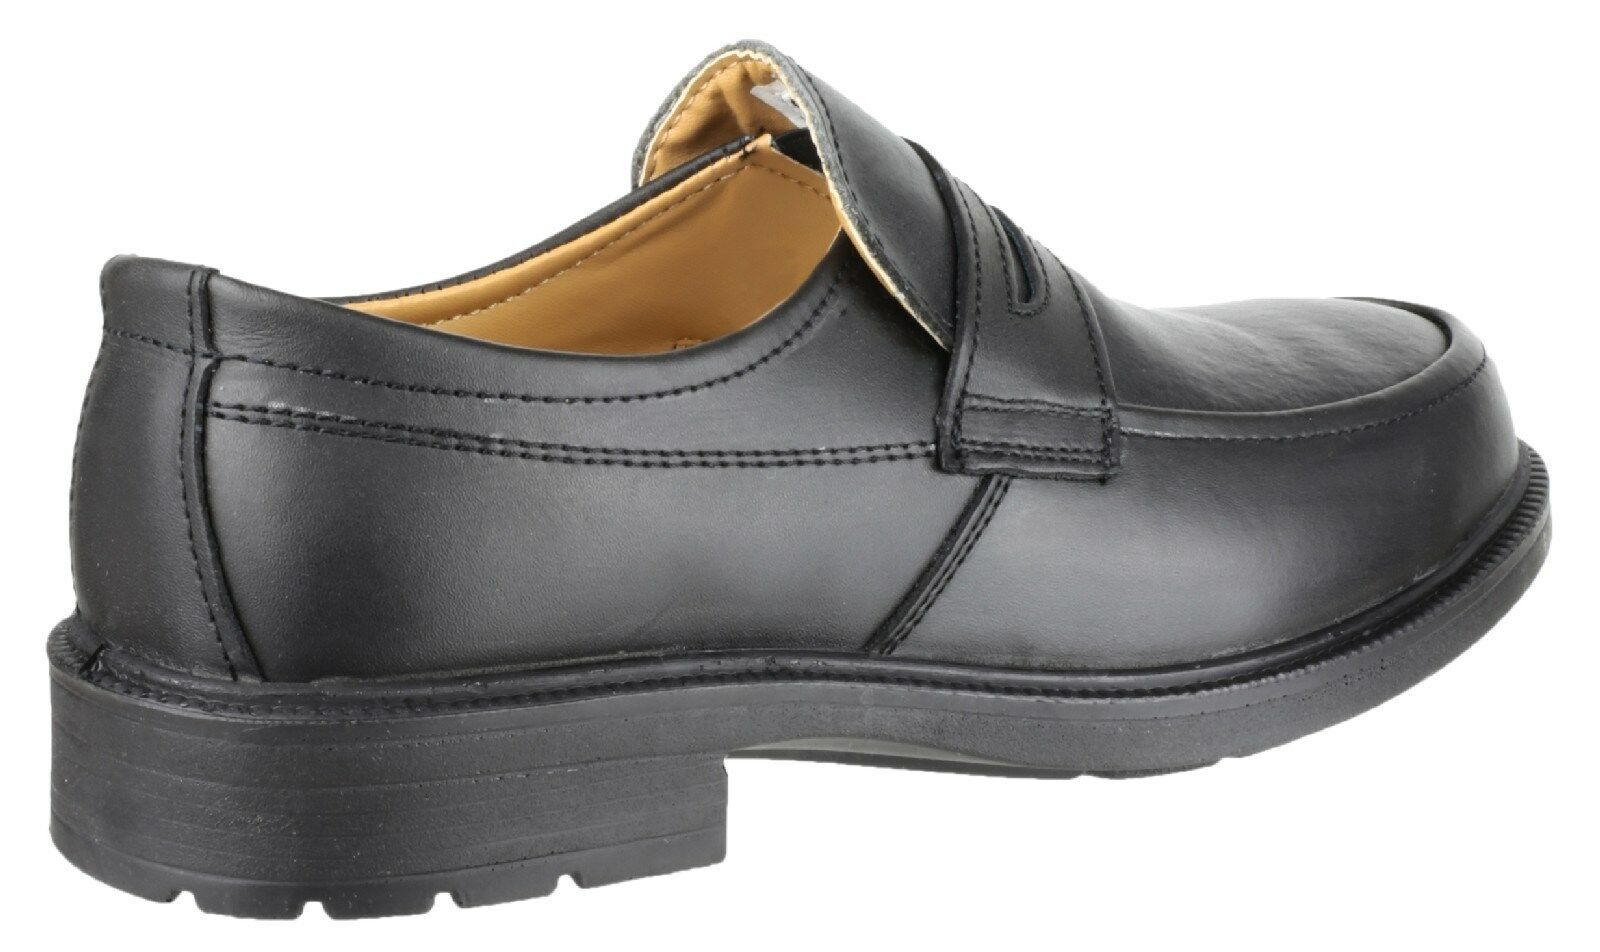 39d0d9aee1d Details about Amblers FS46 Safety Shoes Mens Smart Steel Toe Cap Industrial  Work Slip Ons